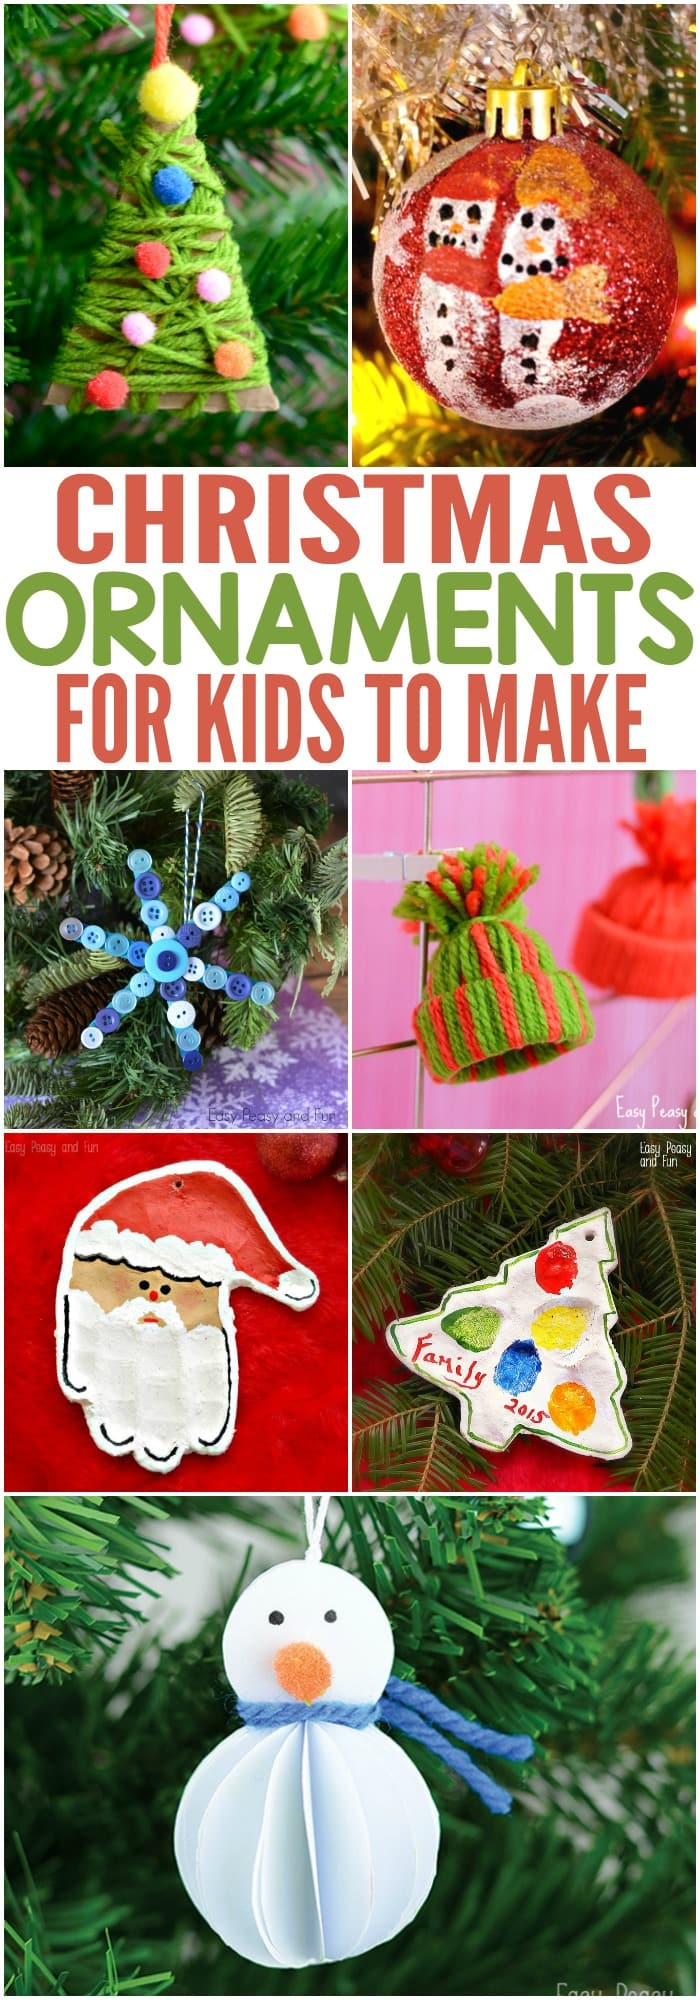 25 Fun Christmas Games and Activities for Kids From One to Liven up your Christmas party or family get-together with these creative games.